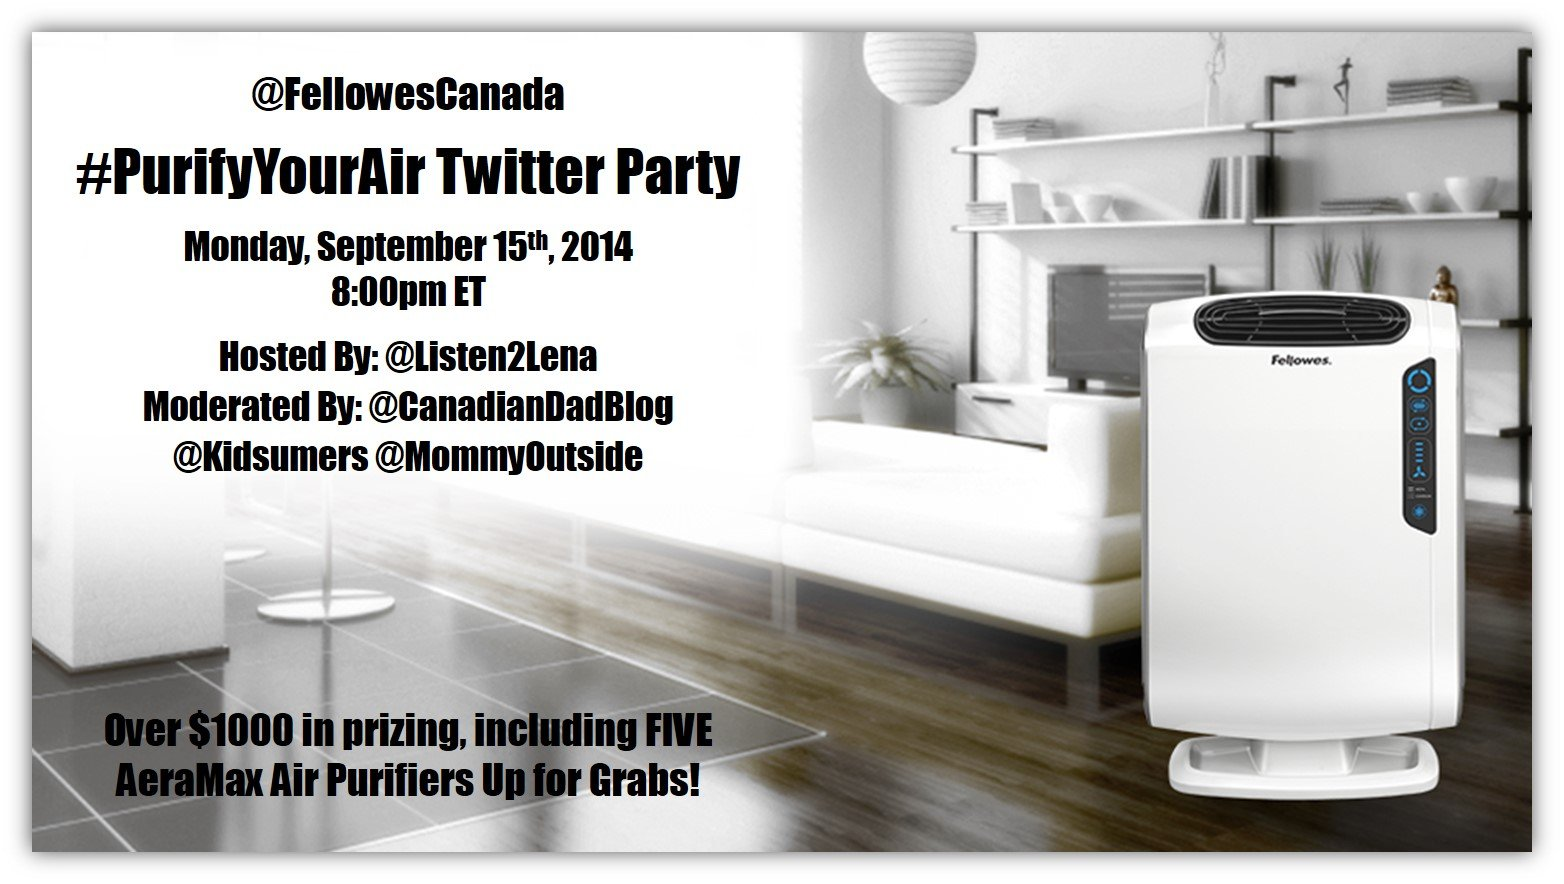 Purity Your Air Twitter Party